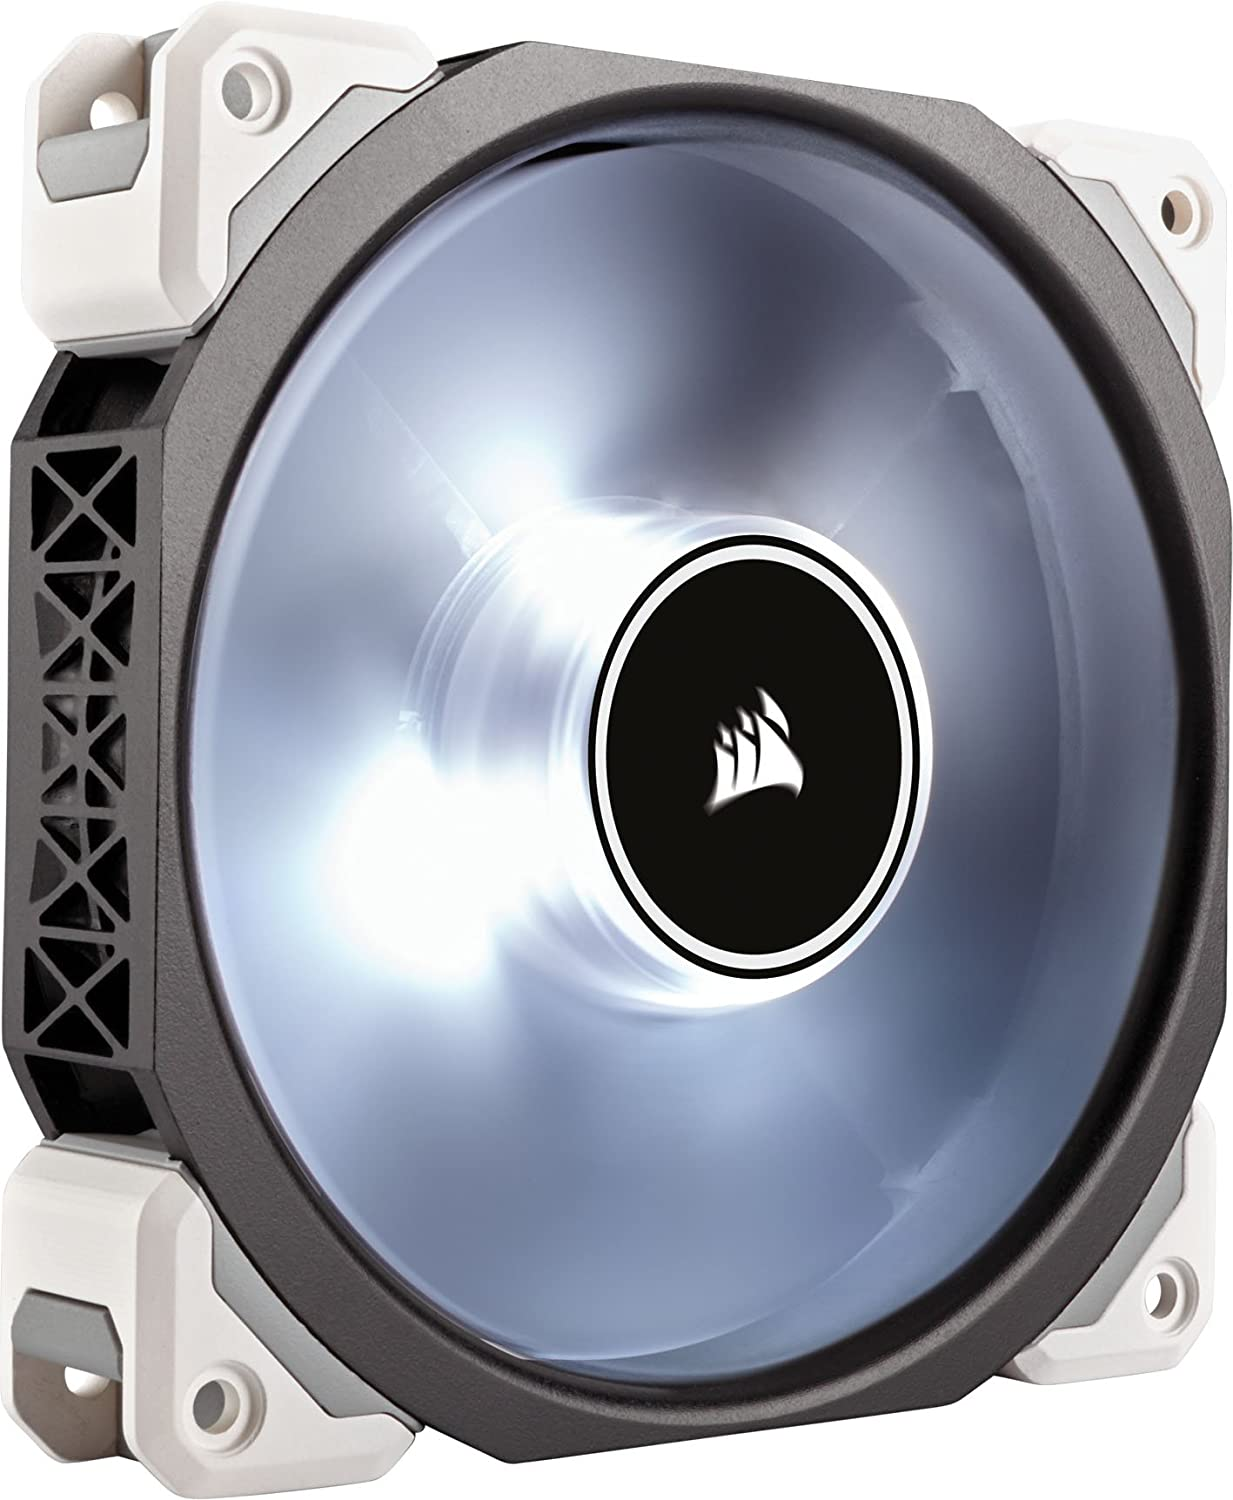 Corsair ML120 Pro LED, White, 120mm Premium Magnetic Levitation Cooling Fan CO-9050041-WW